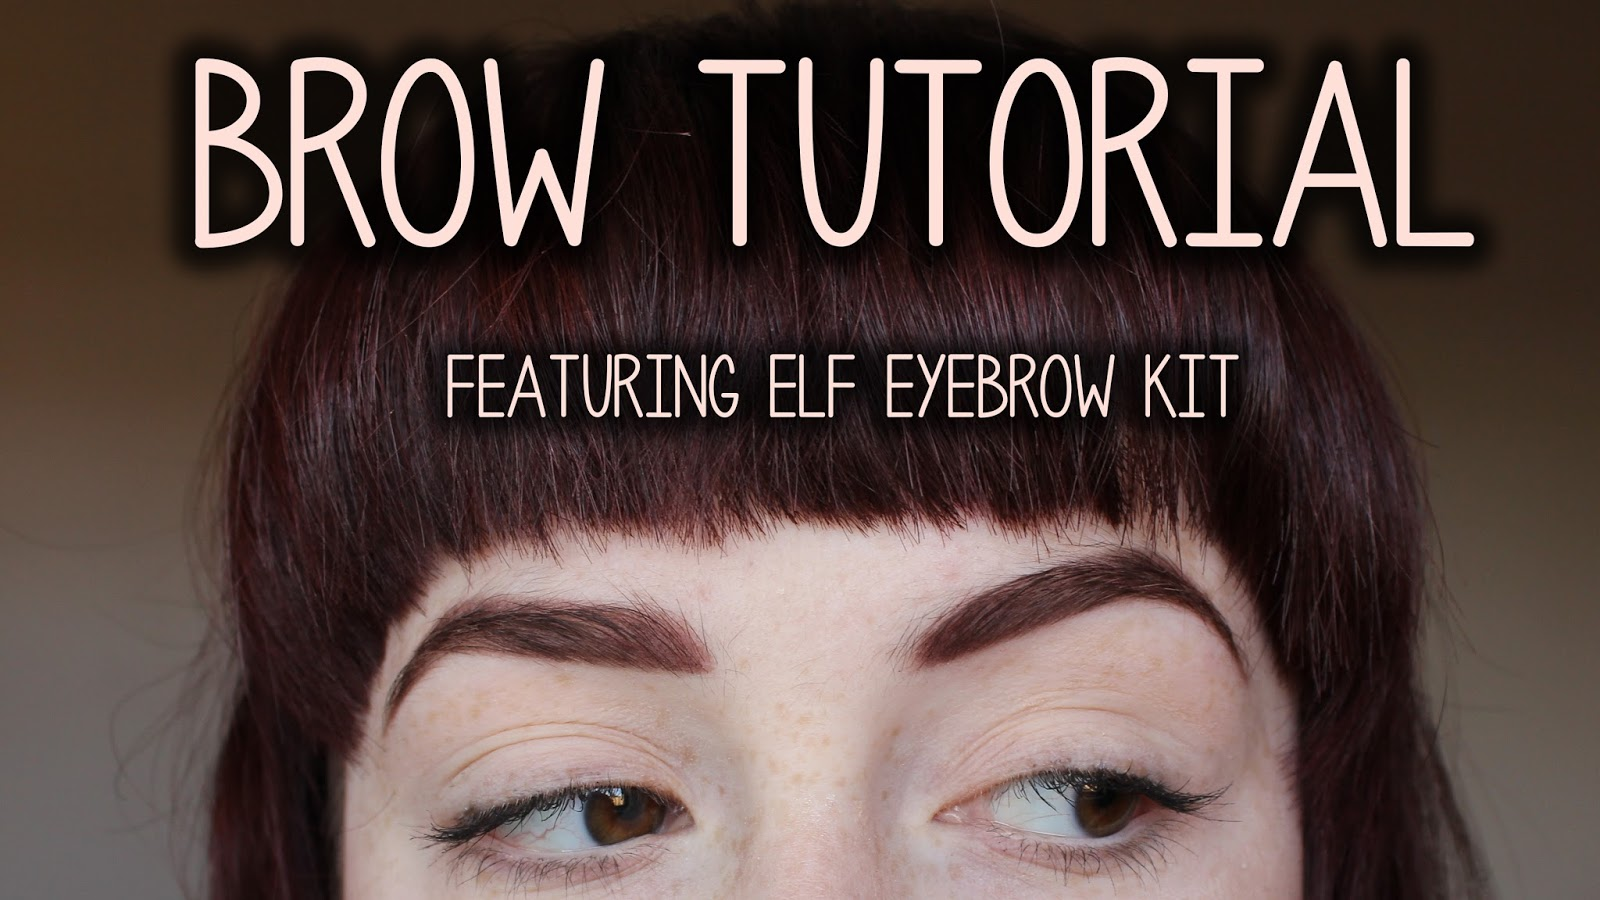 Coffeepls Its All About Brows Tutorial Using Elf Eyebrow Kit